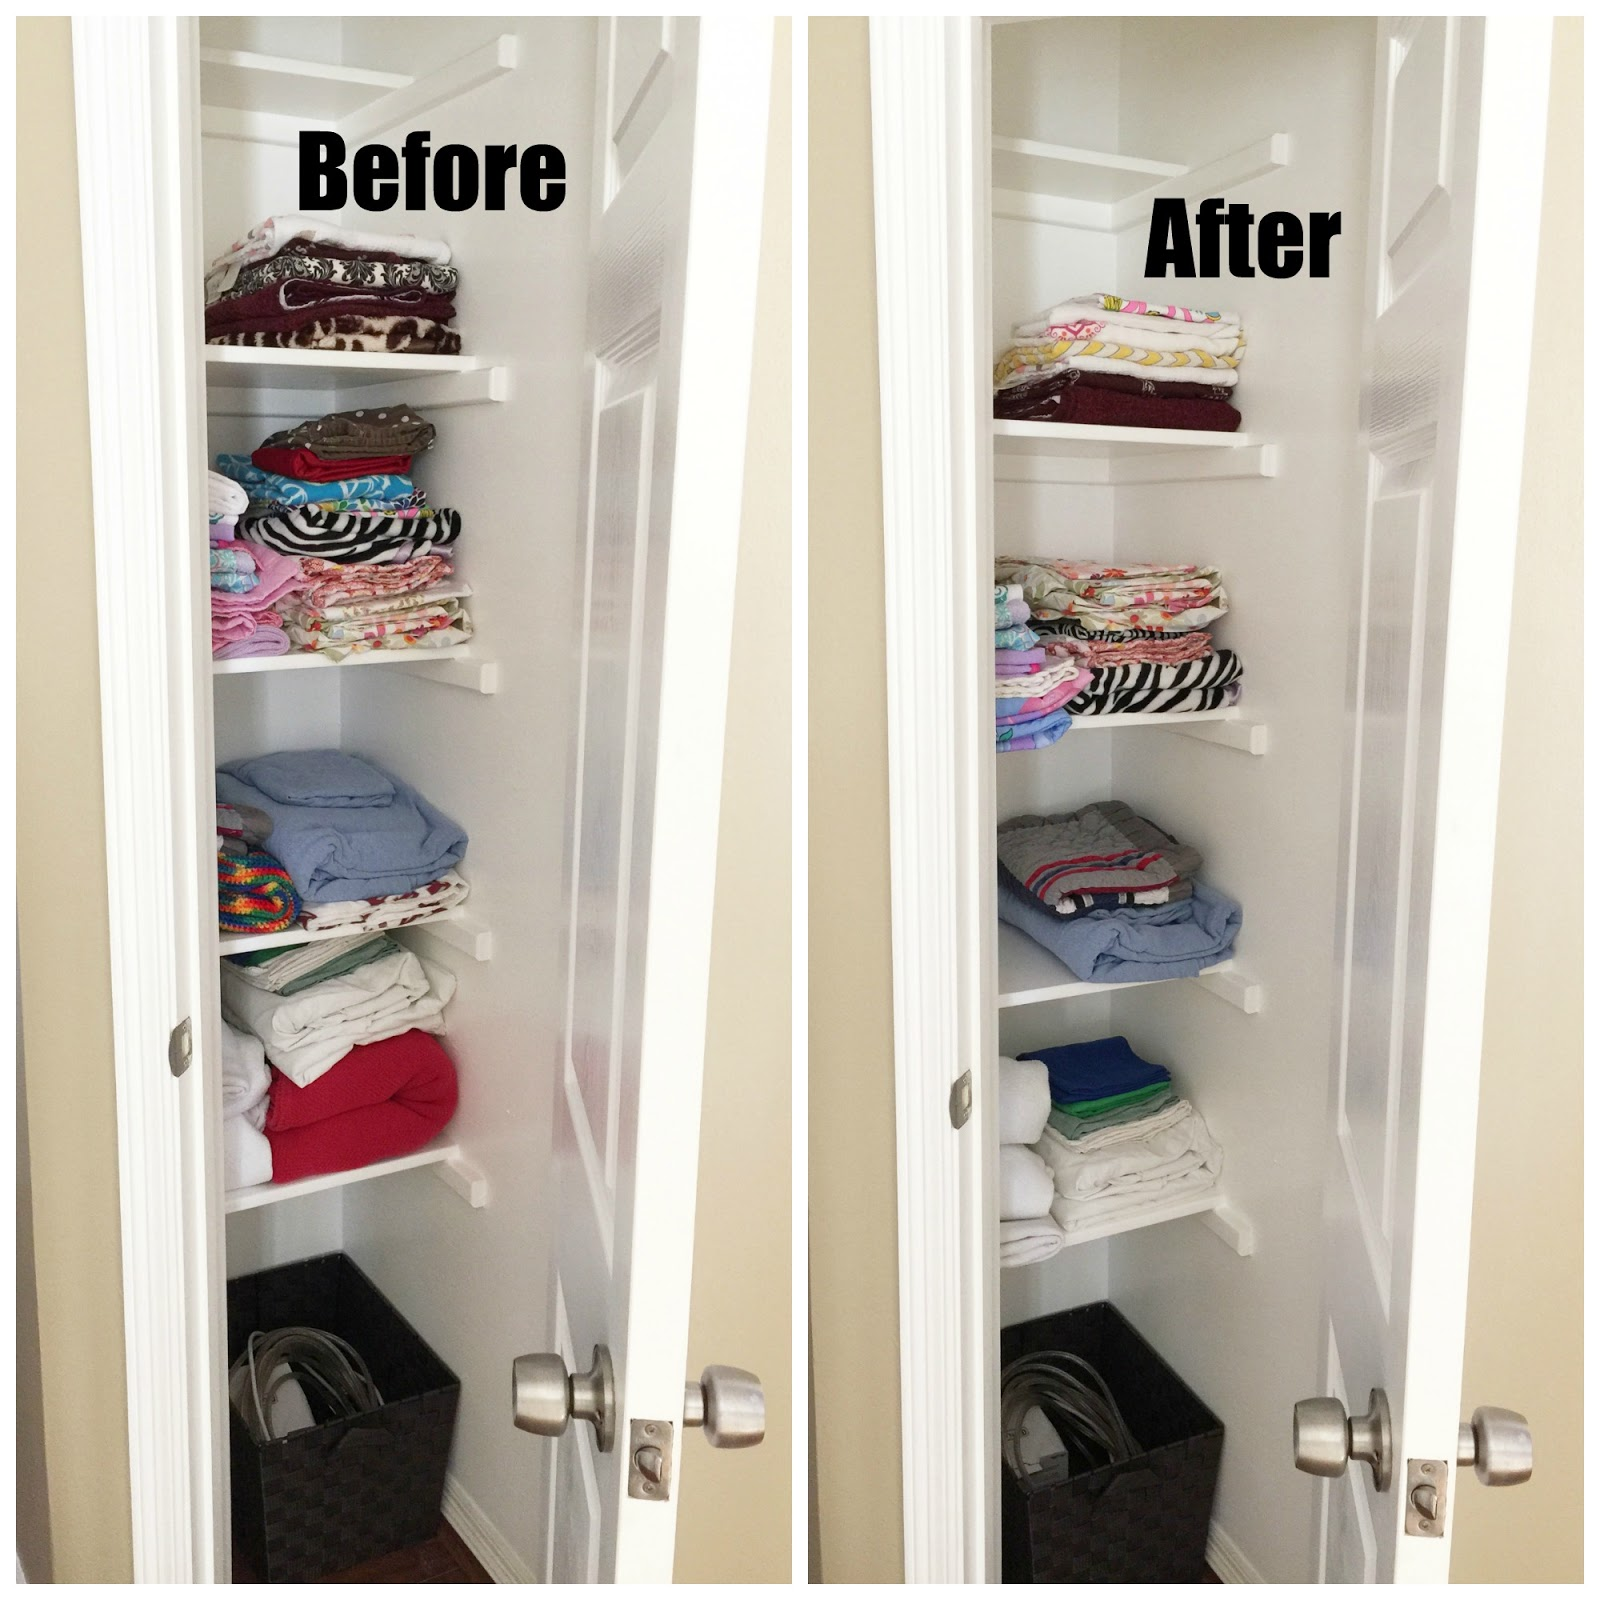 While I M Waiting Can The Konmari Method Of Tidying